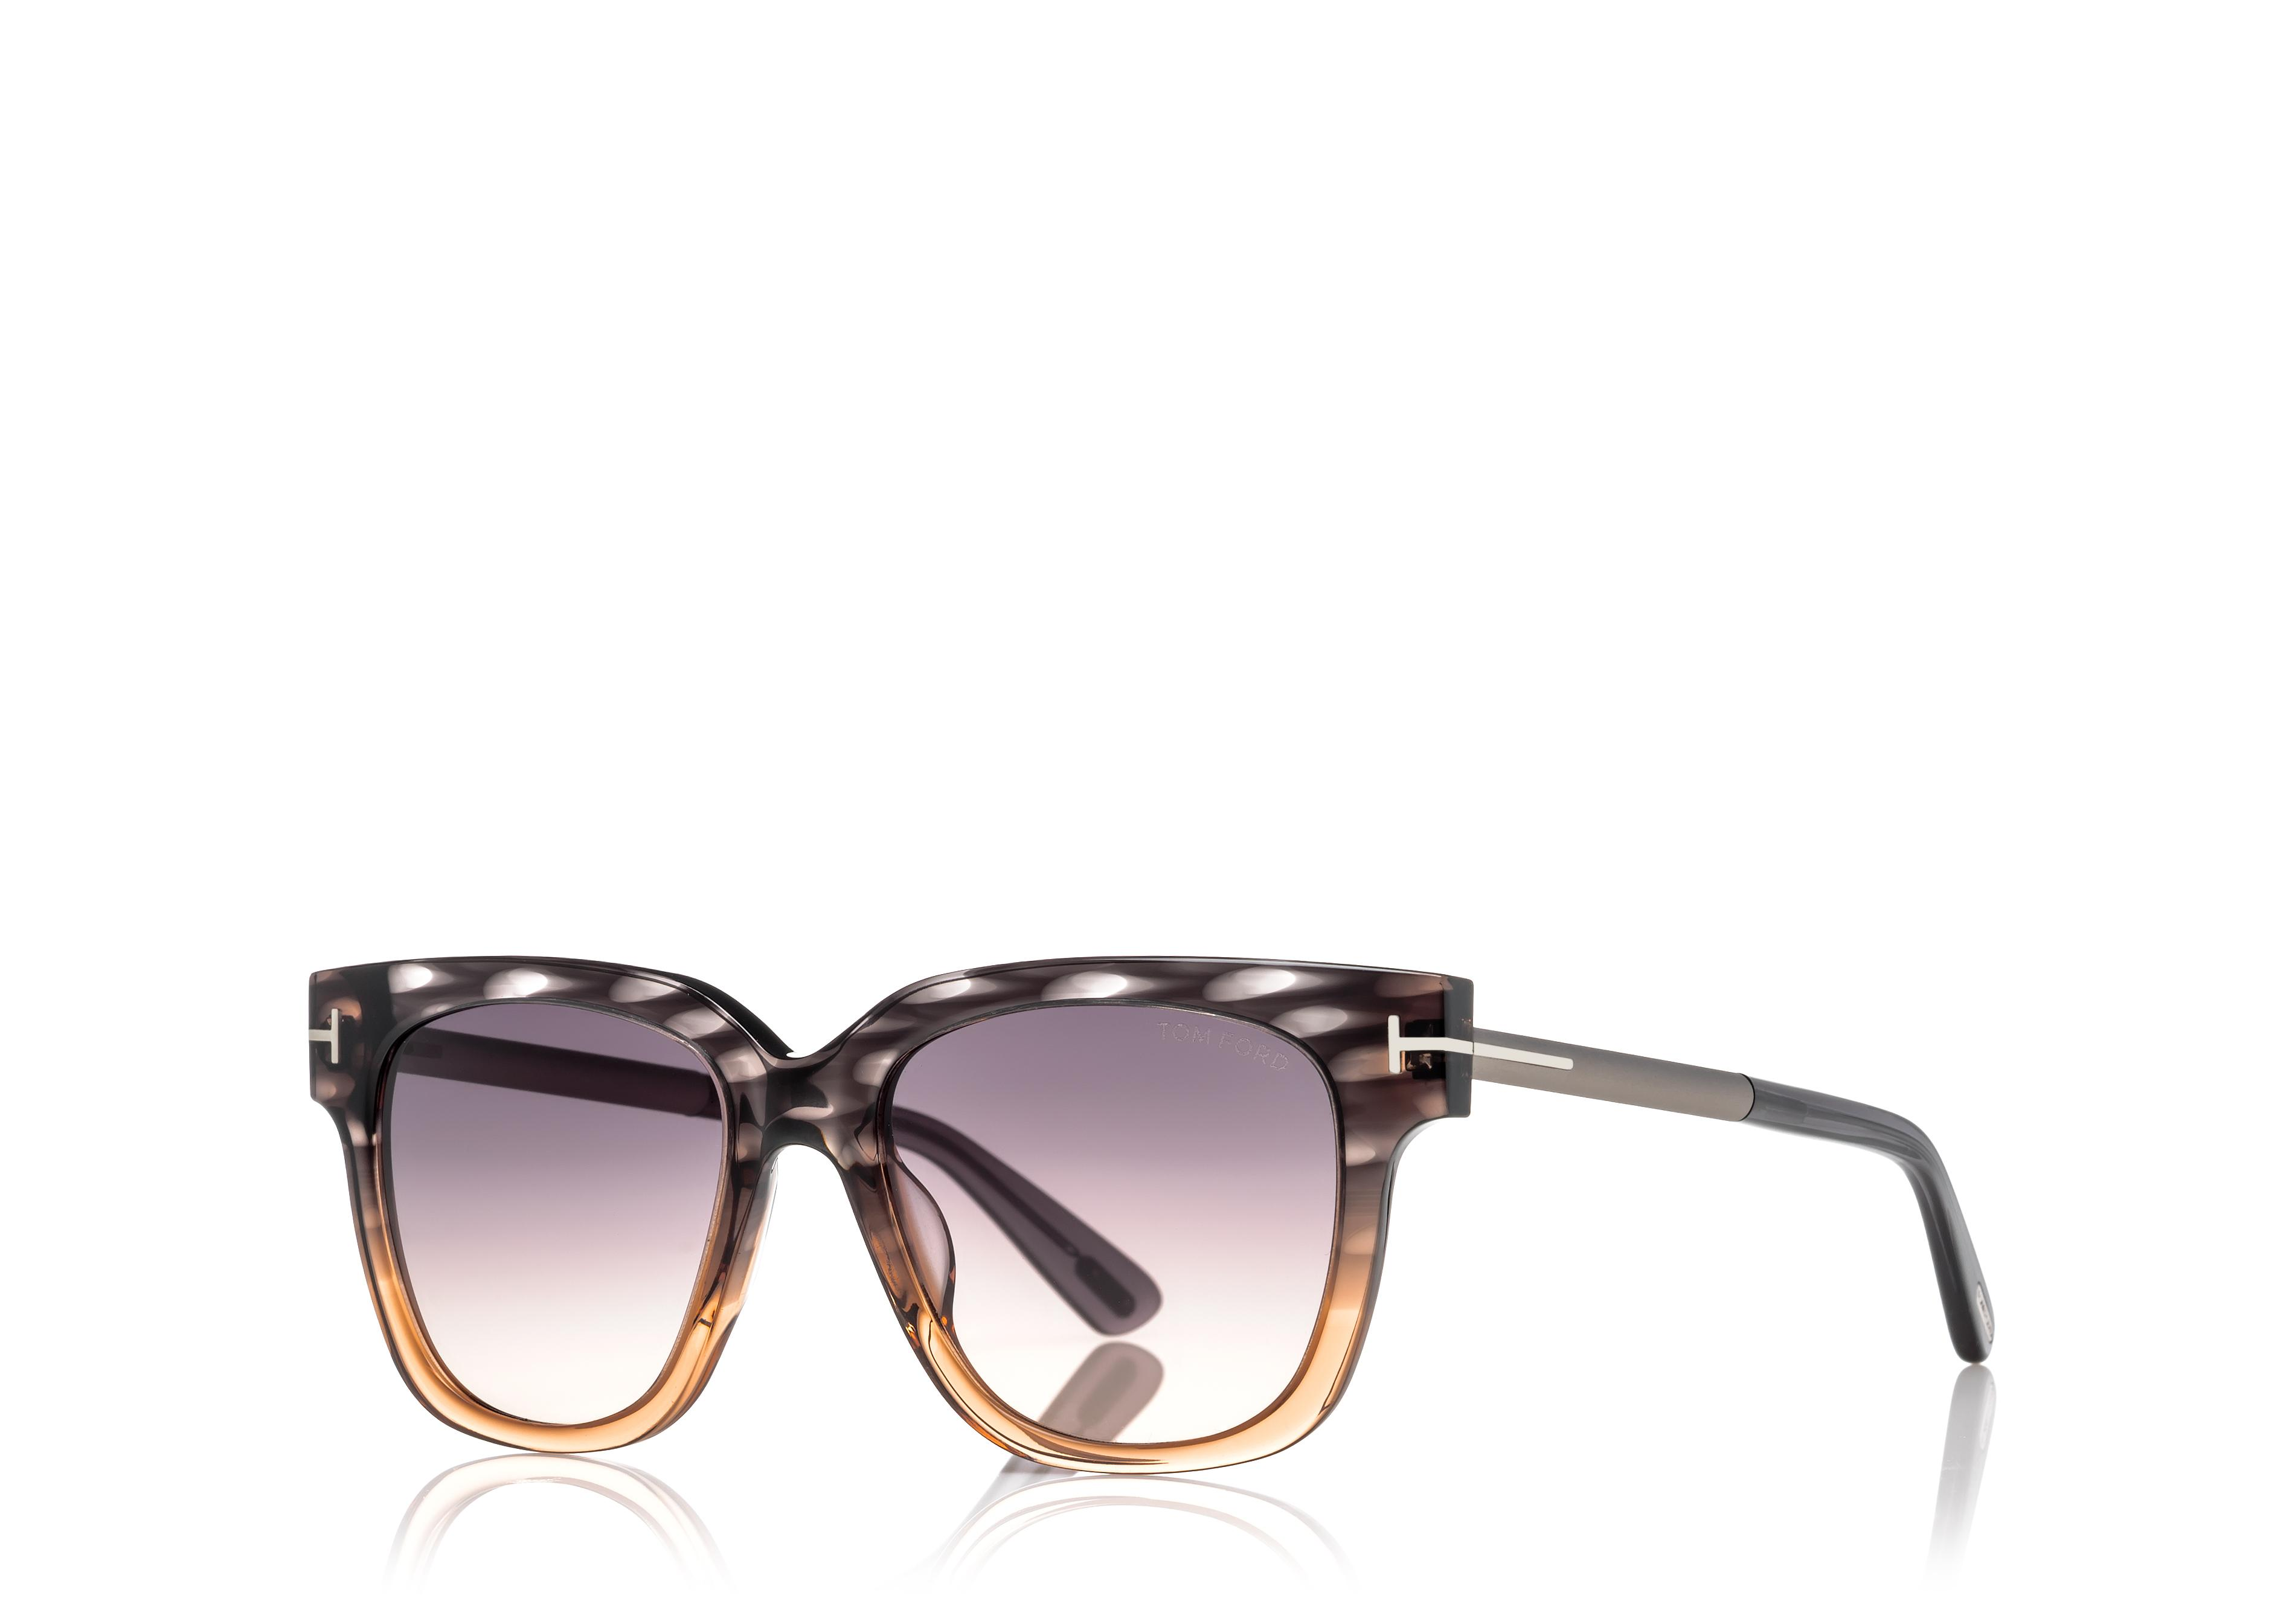 TRACY SUNGLASSES WITH FLASH LENSES C thumbnail